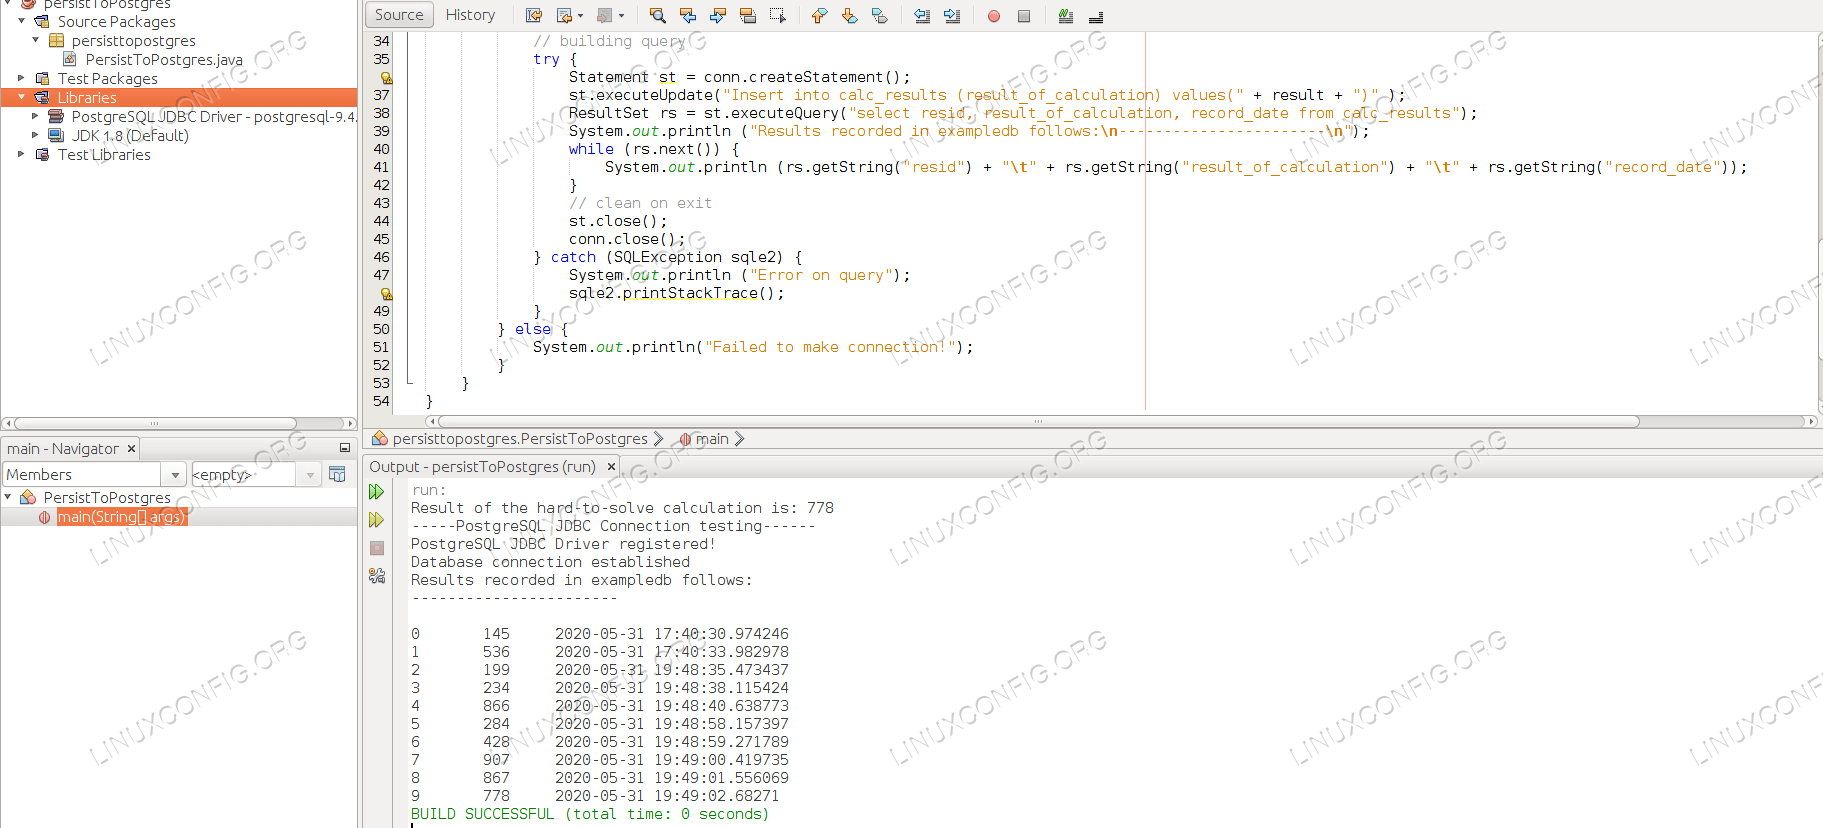 Database output shows the results of every execution of the application